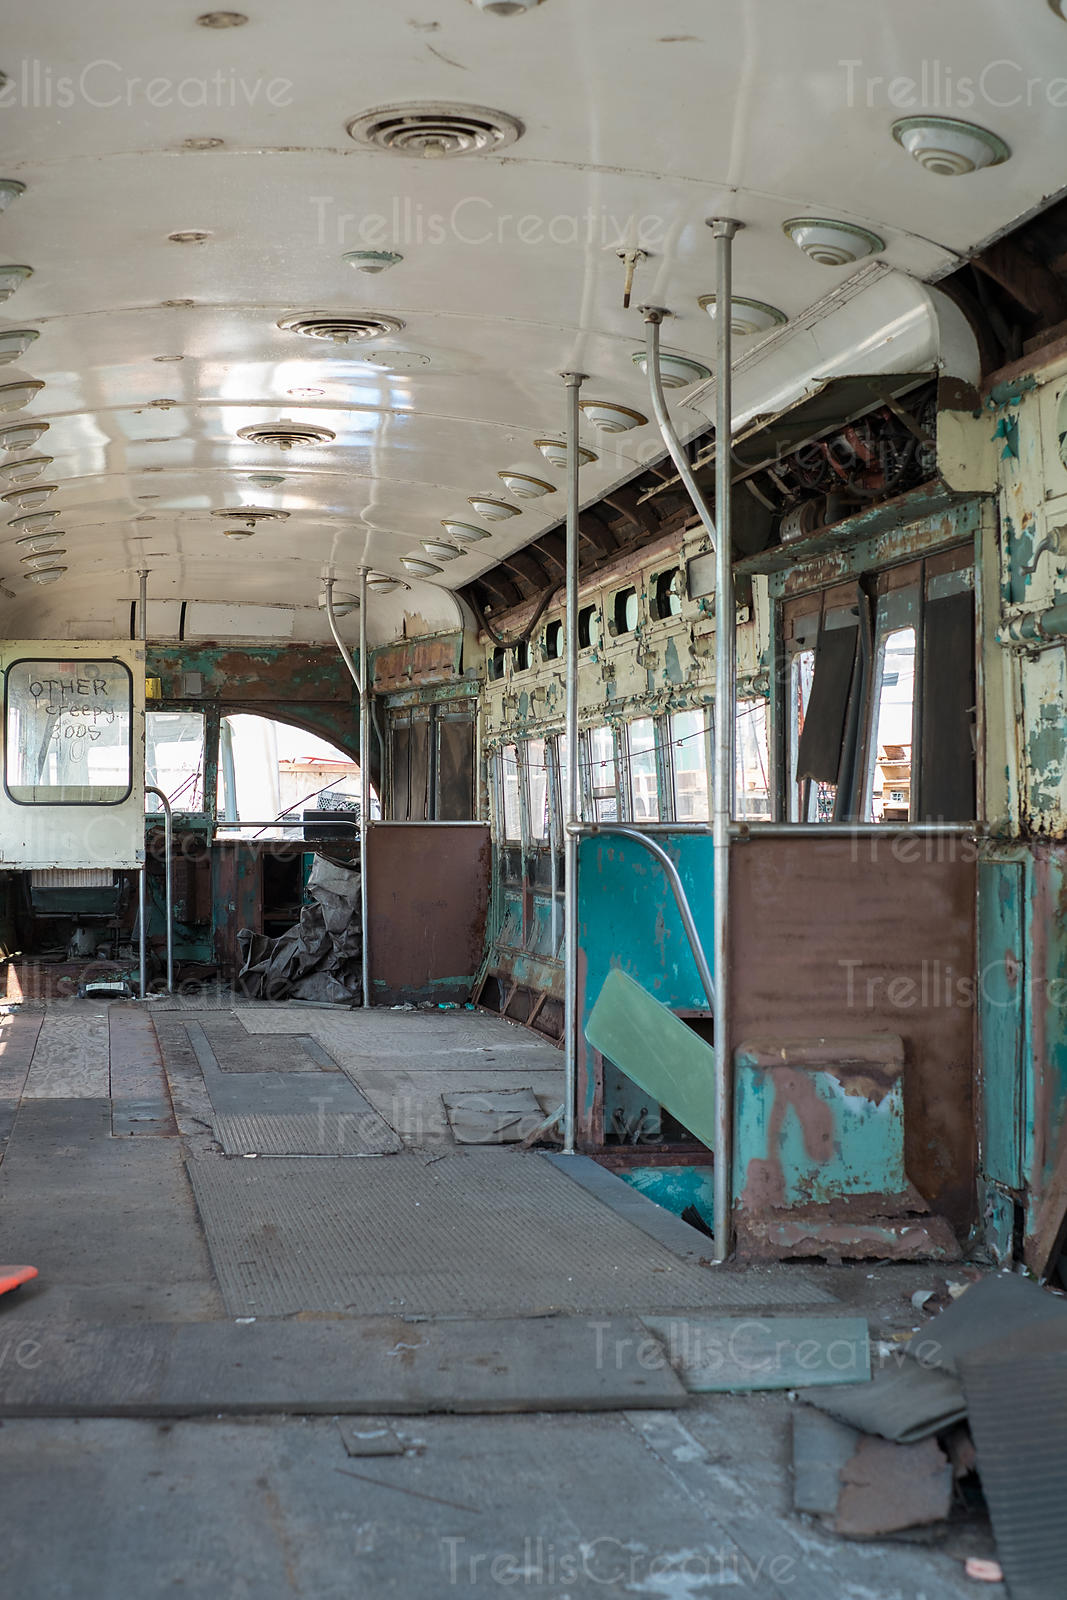 Interior of abandoned rusty vehicle